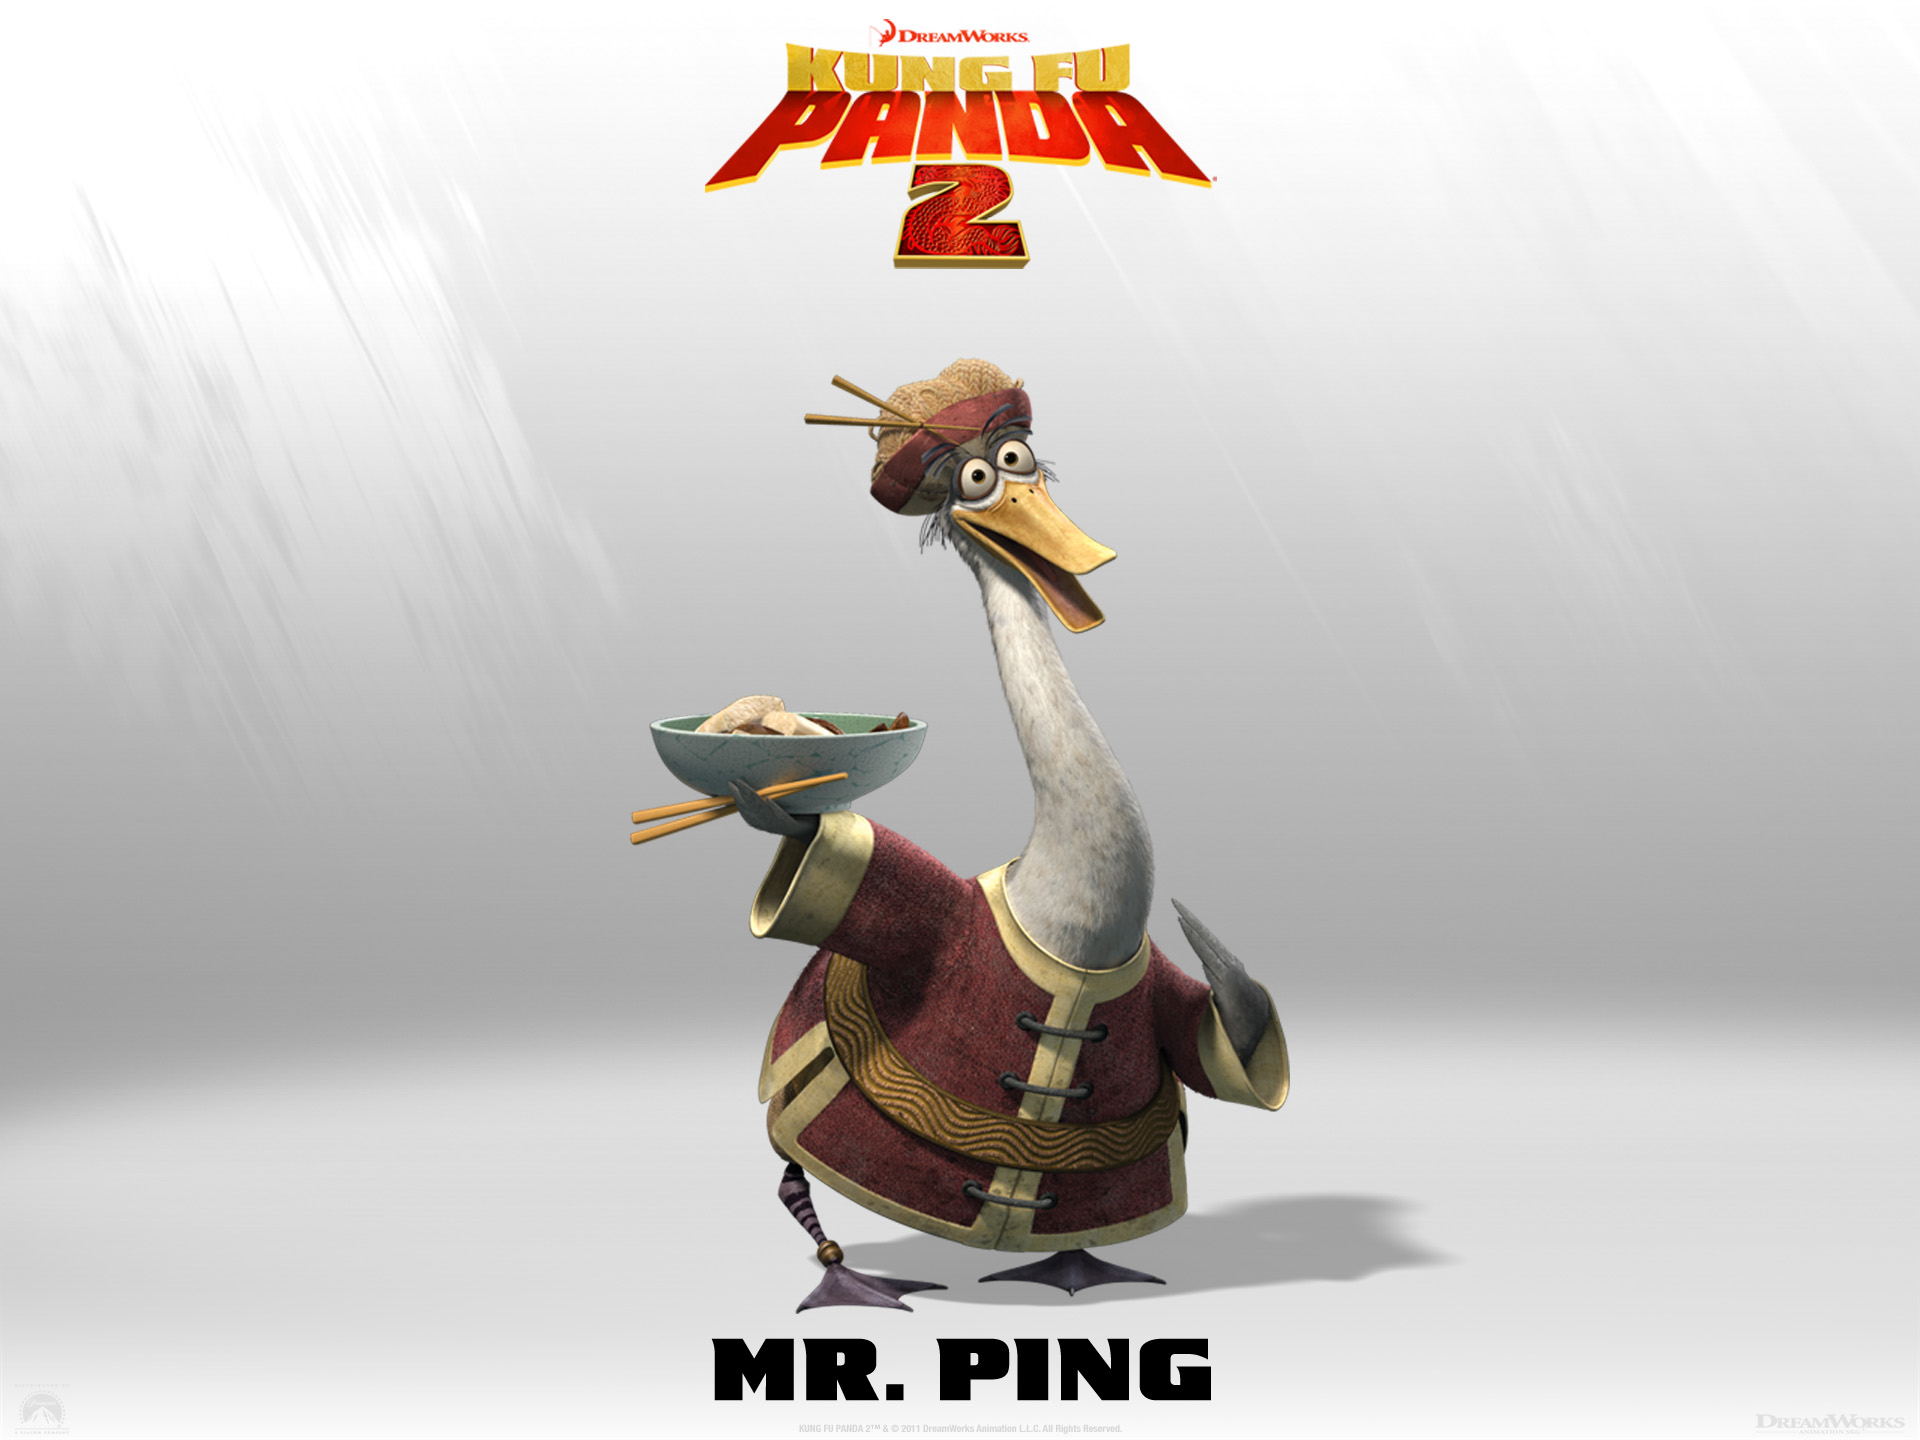 Wallpaper Kung Fu PANDA 2 Mrping Cinema Video